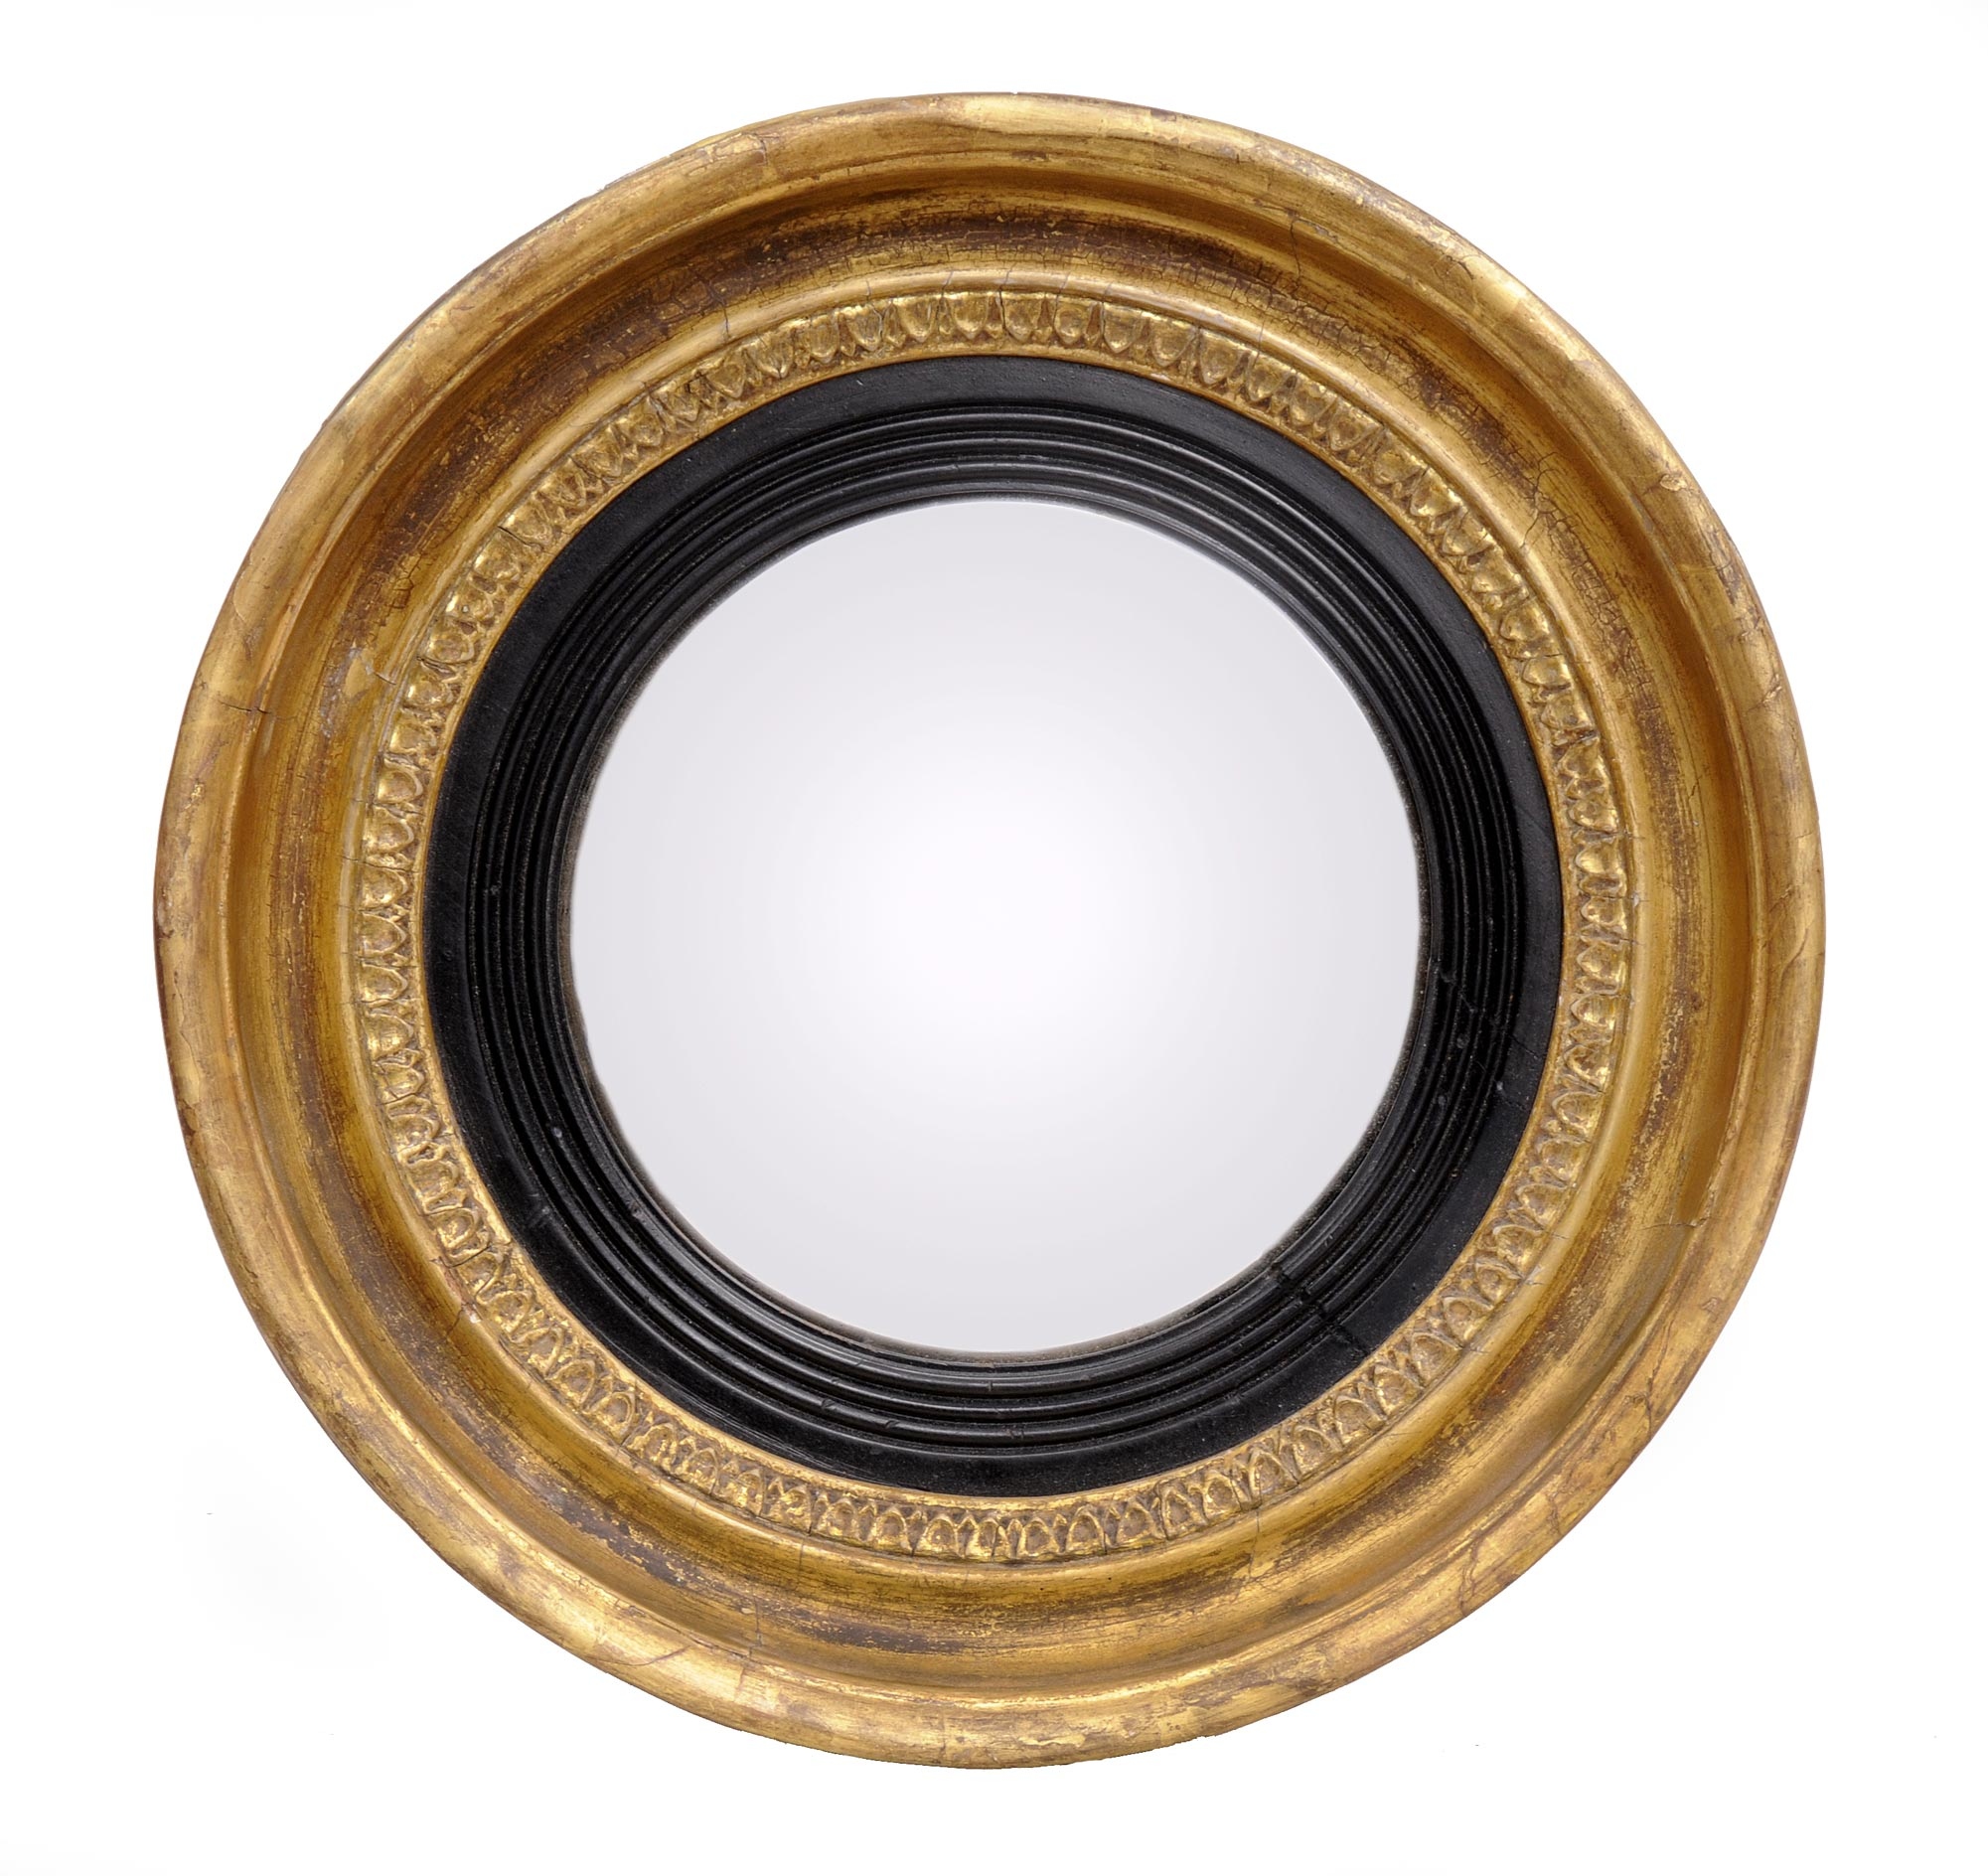 Small Gold Mirror Set Small Convex Mirror For Creating Striking Wall Decoration